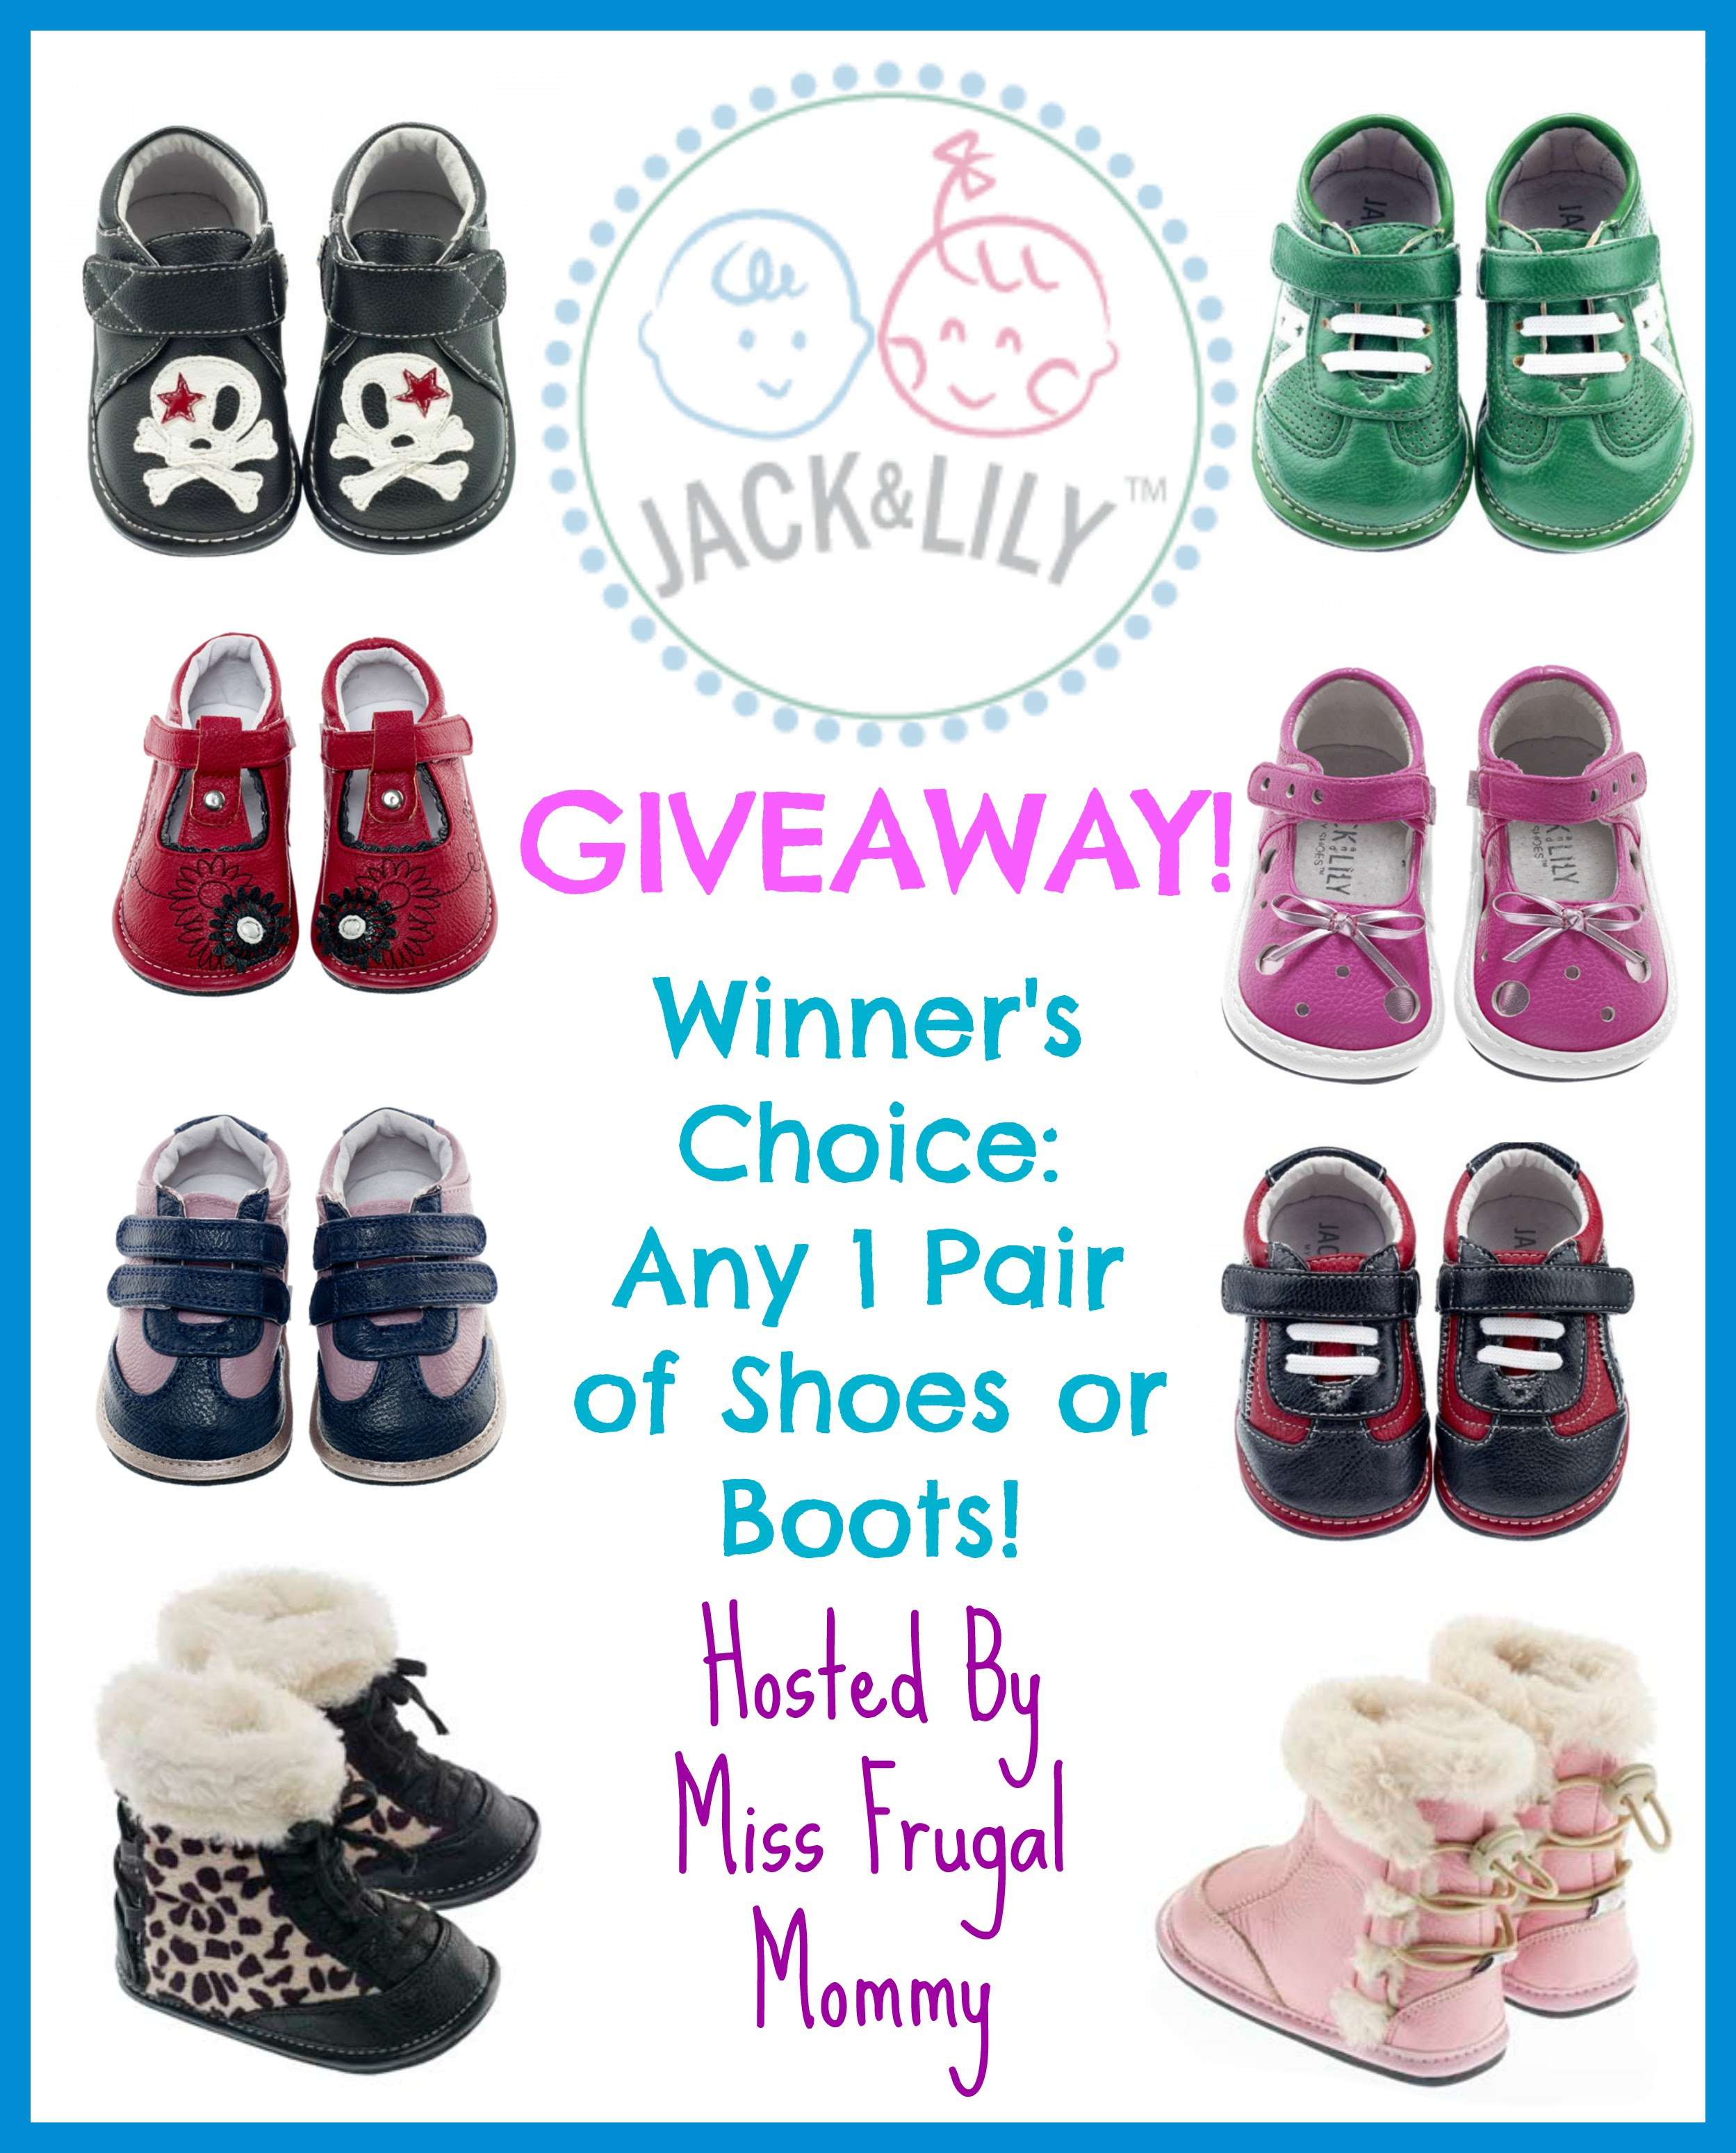 Enter to win the Jack & Lily Giveaway: Winner's Choice. Ends 4/28.